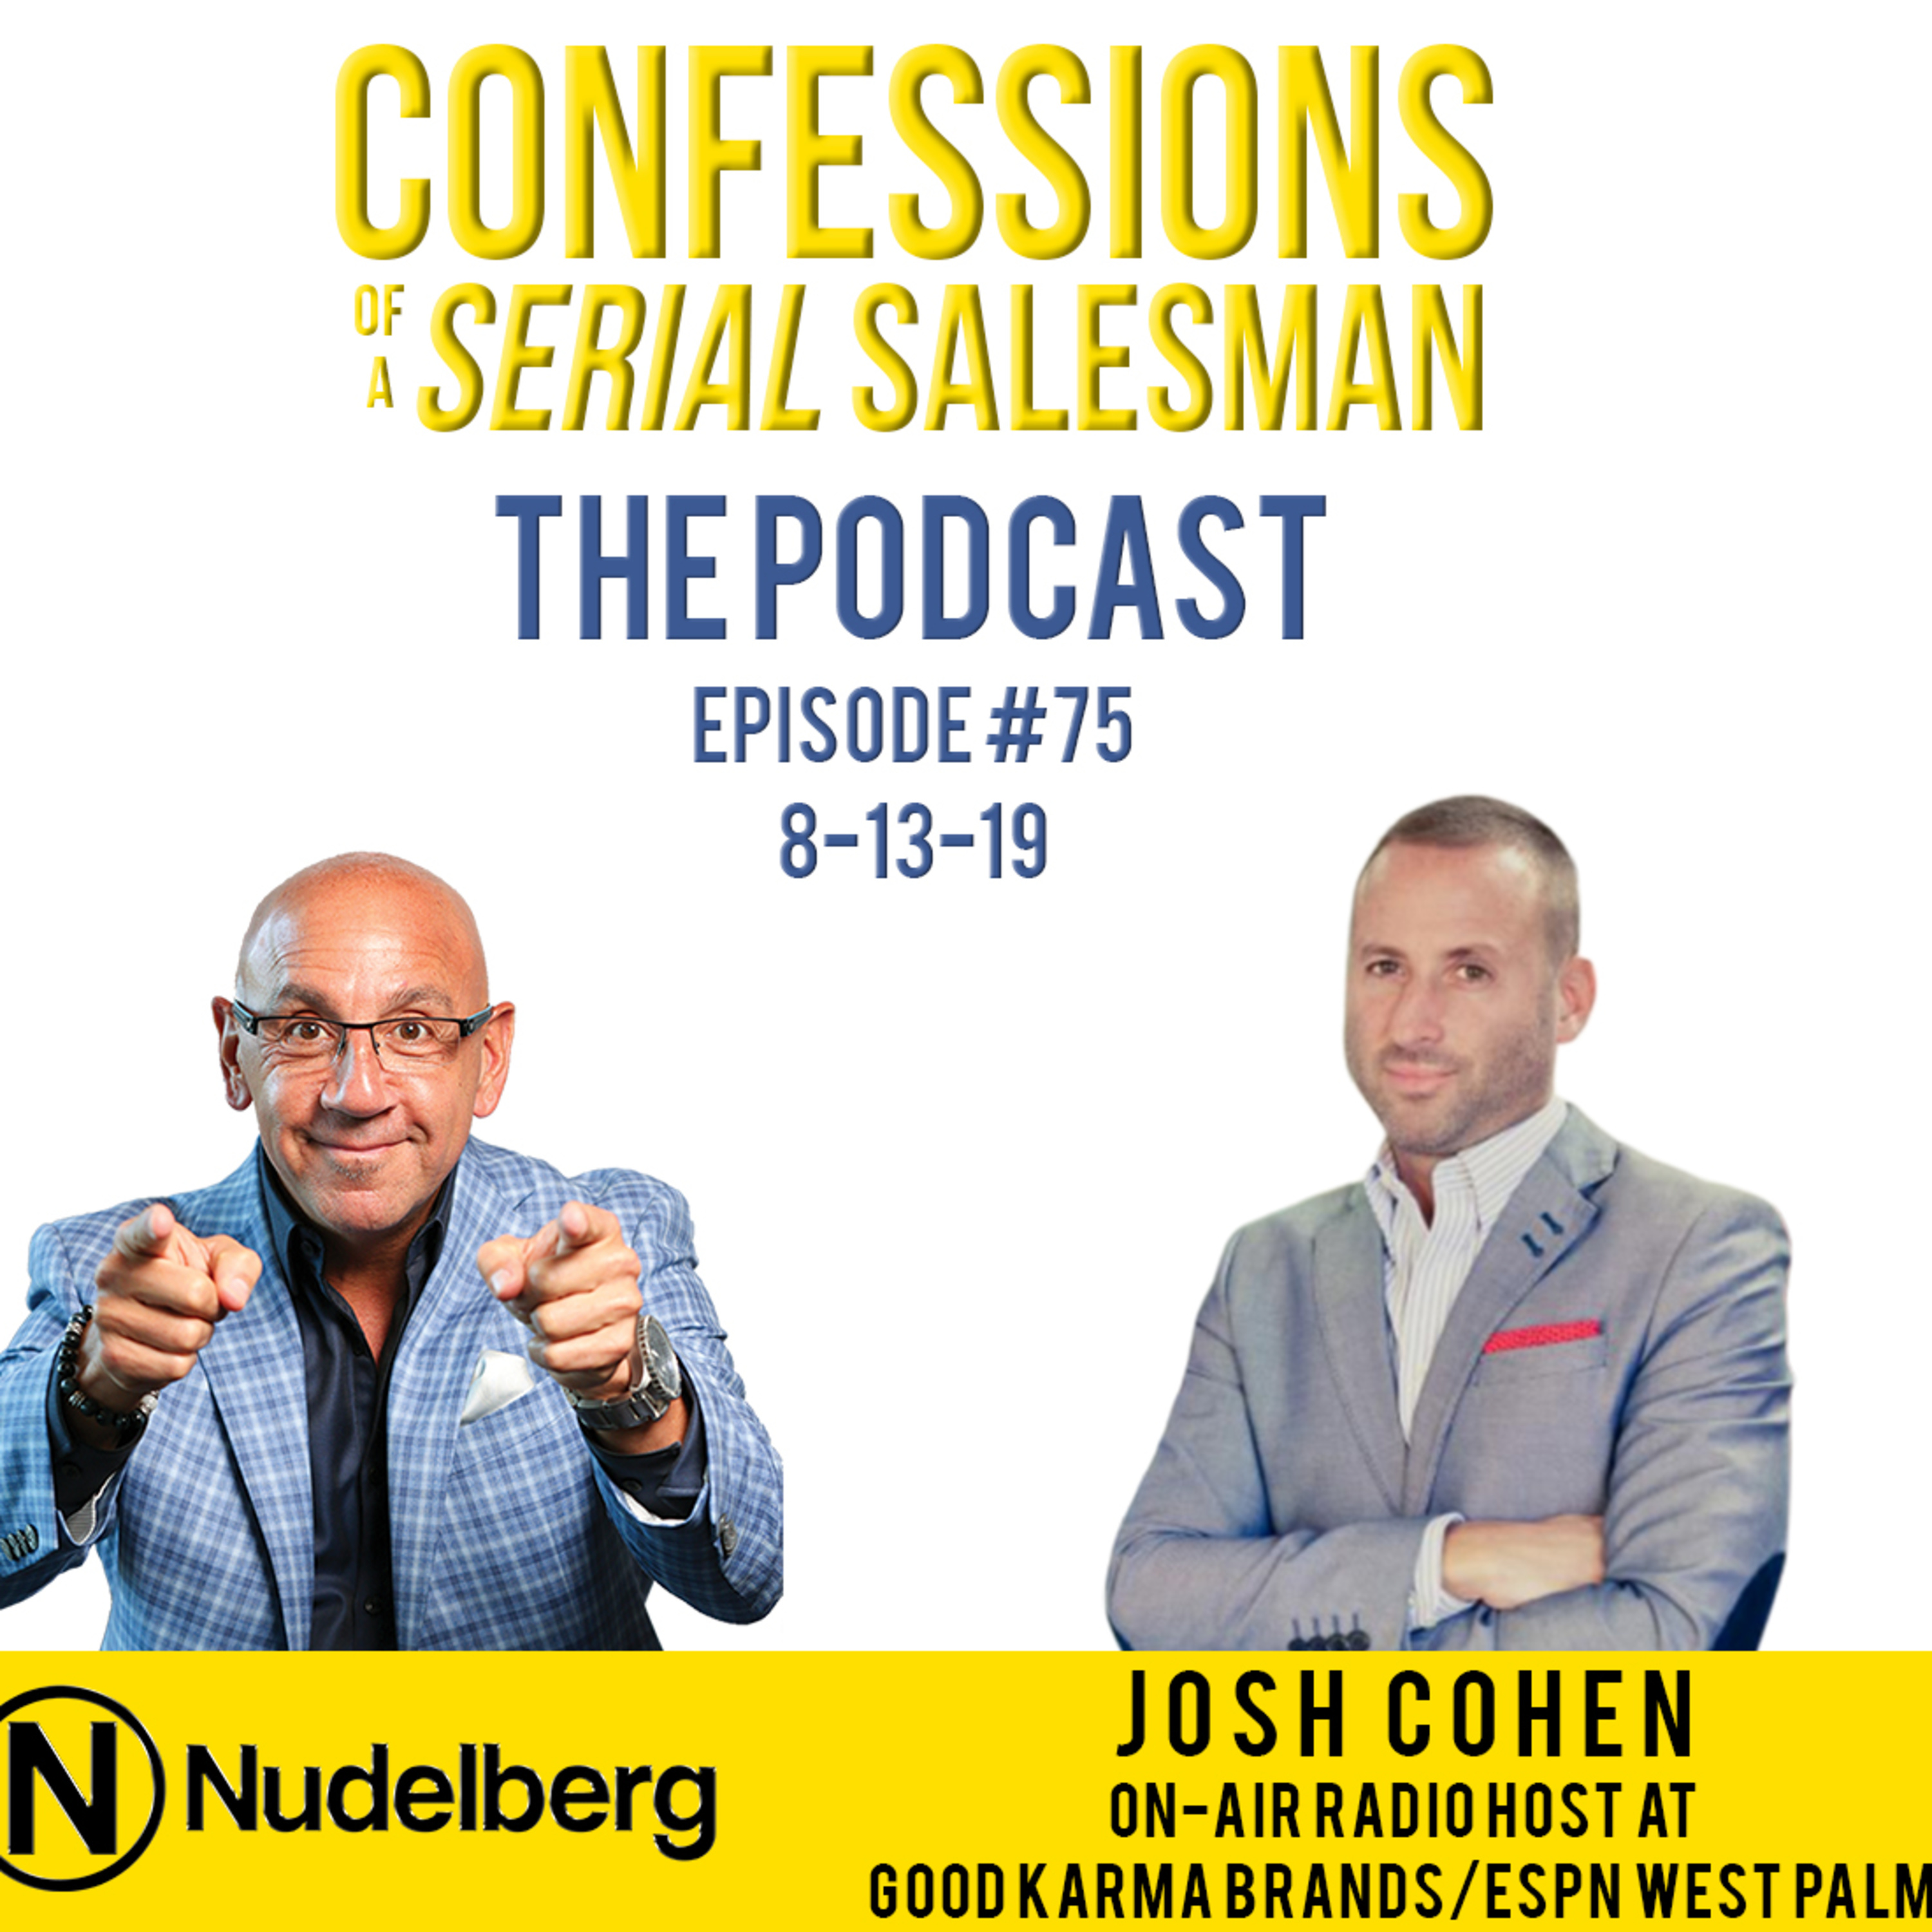 Confessions of a Serial Salesman The Podcast with my Co-Host Josh Cohen